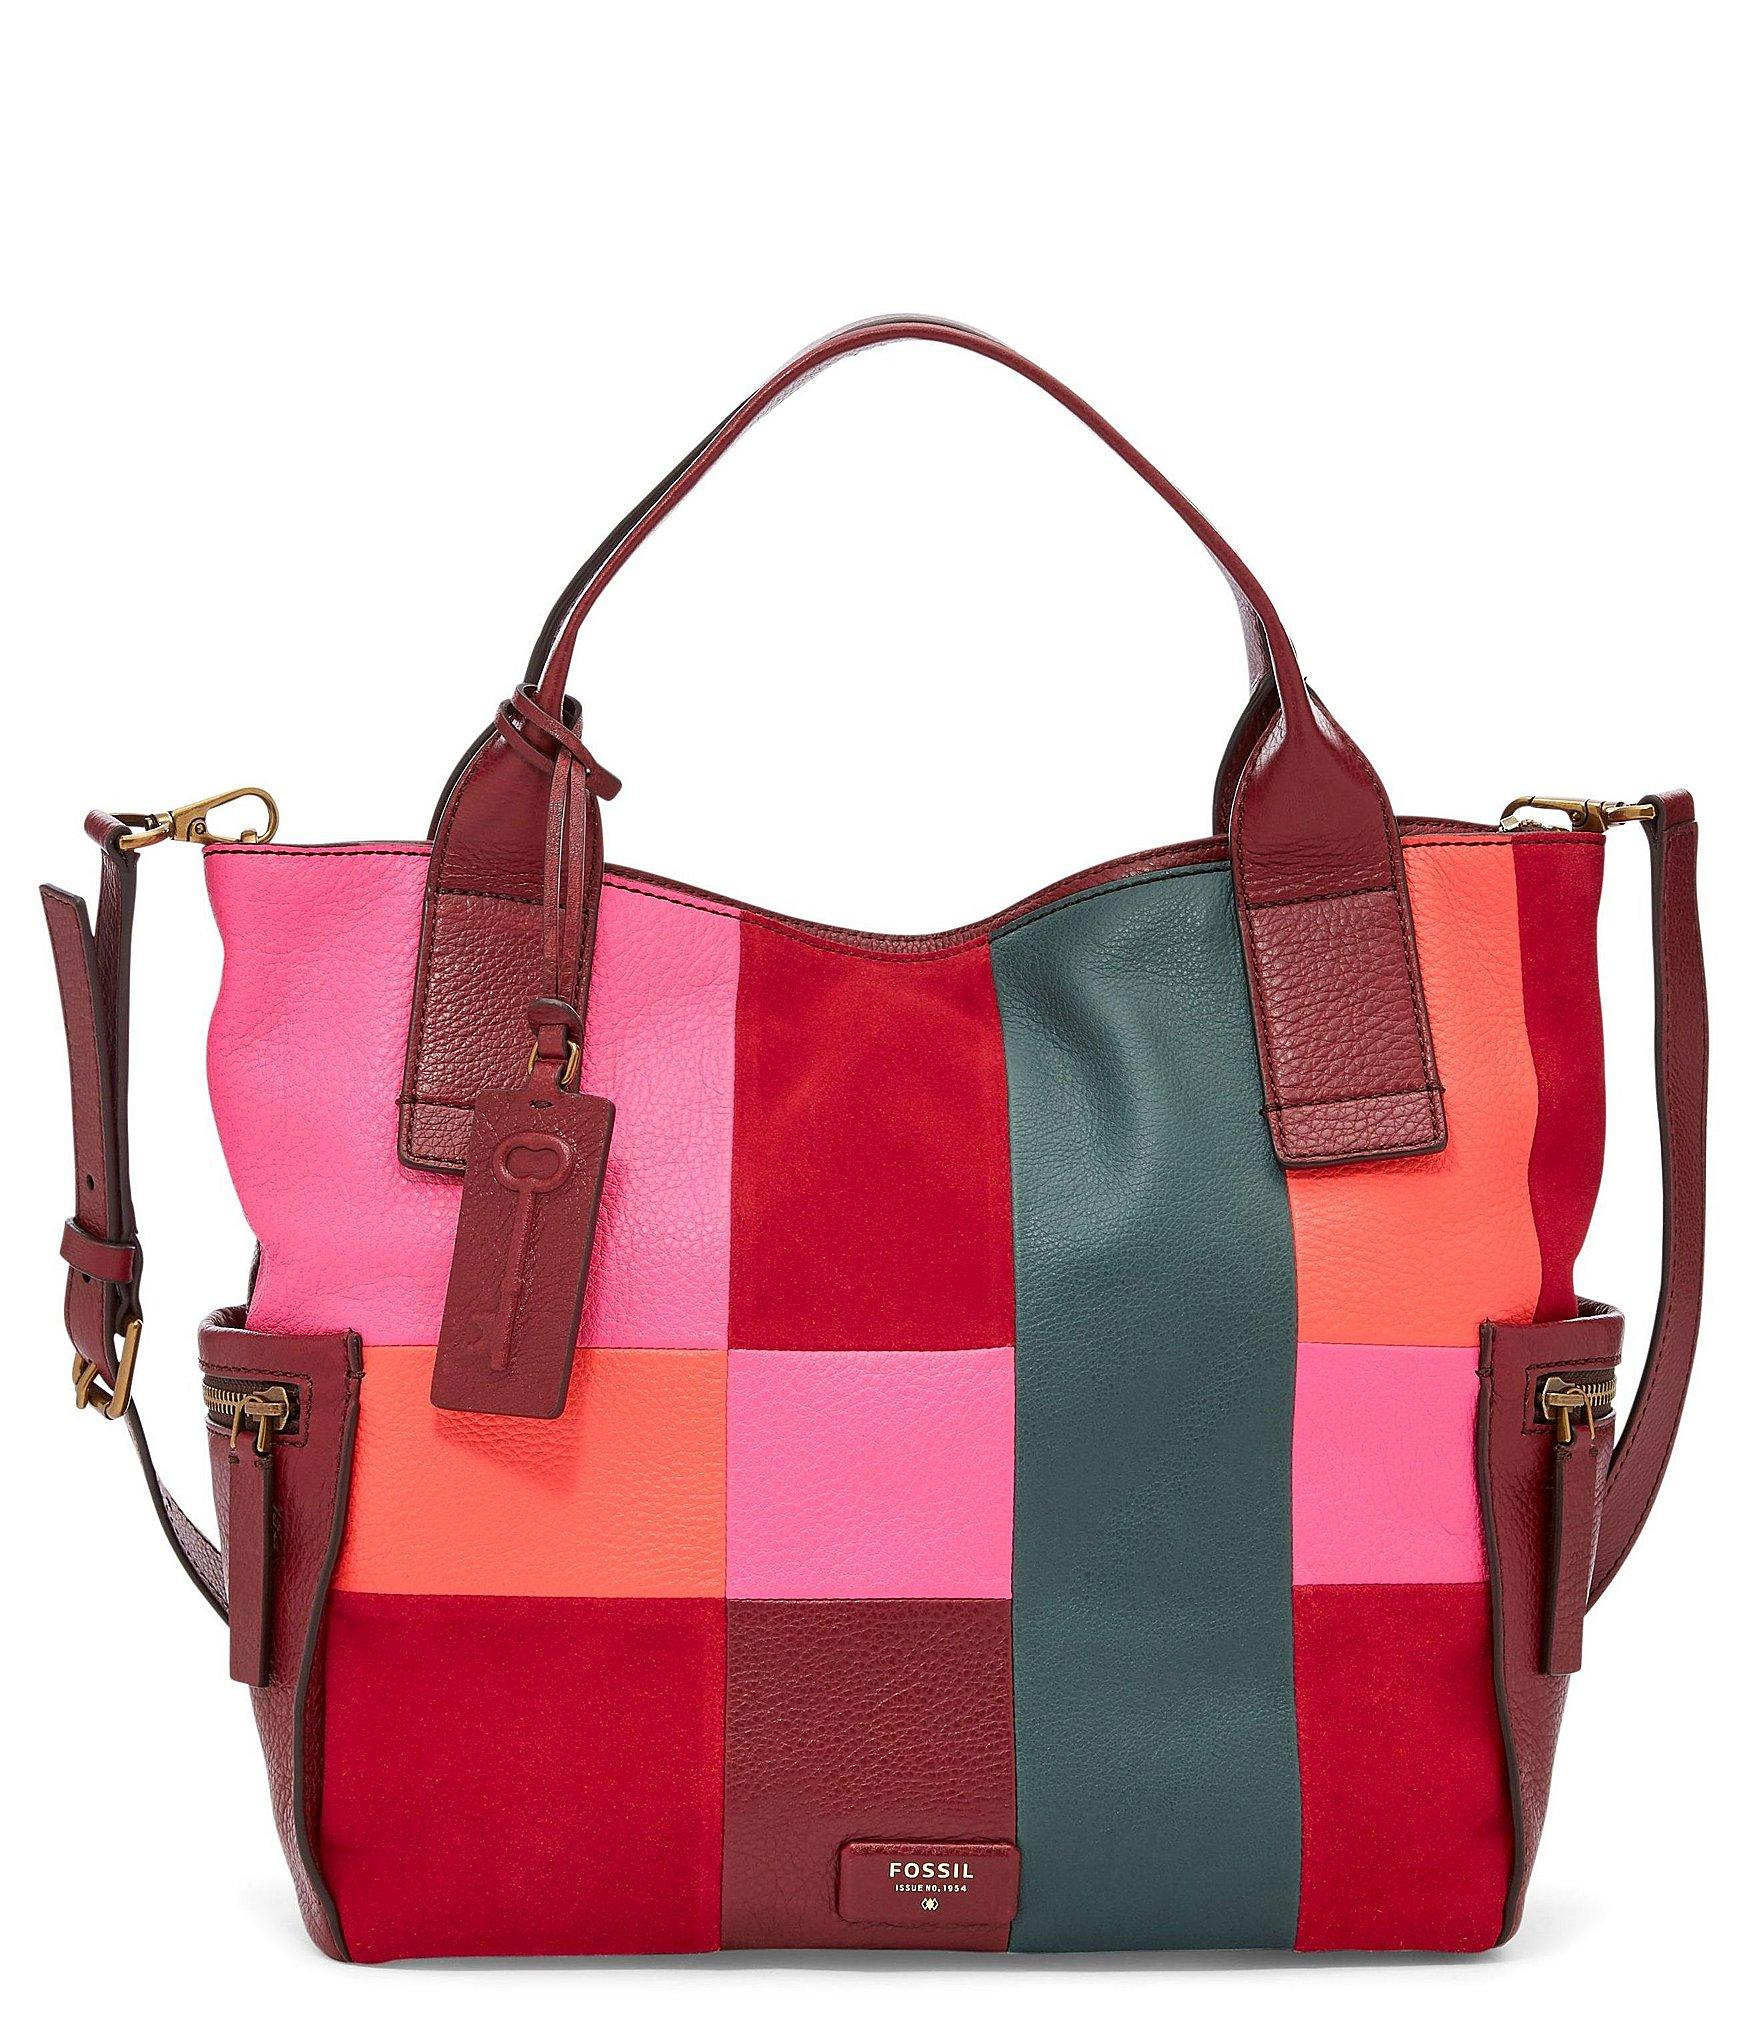 6fcb5ef7f1 Lyst - Fossil Emerson Patchwork Satchel in Red